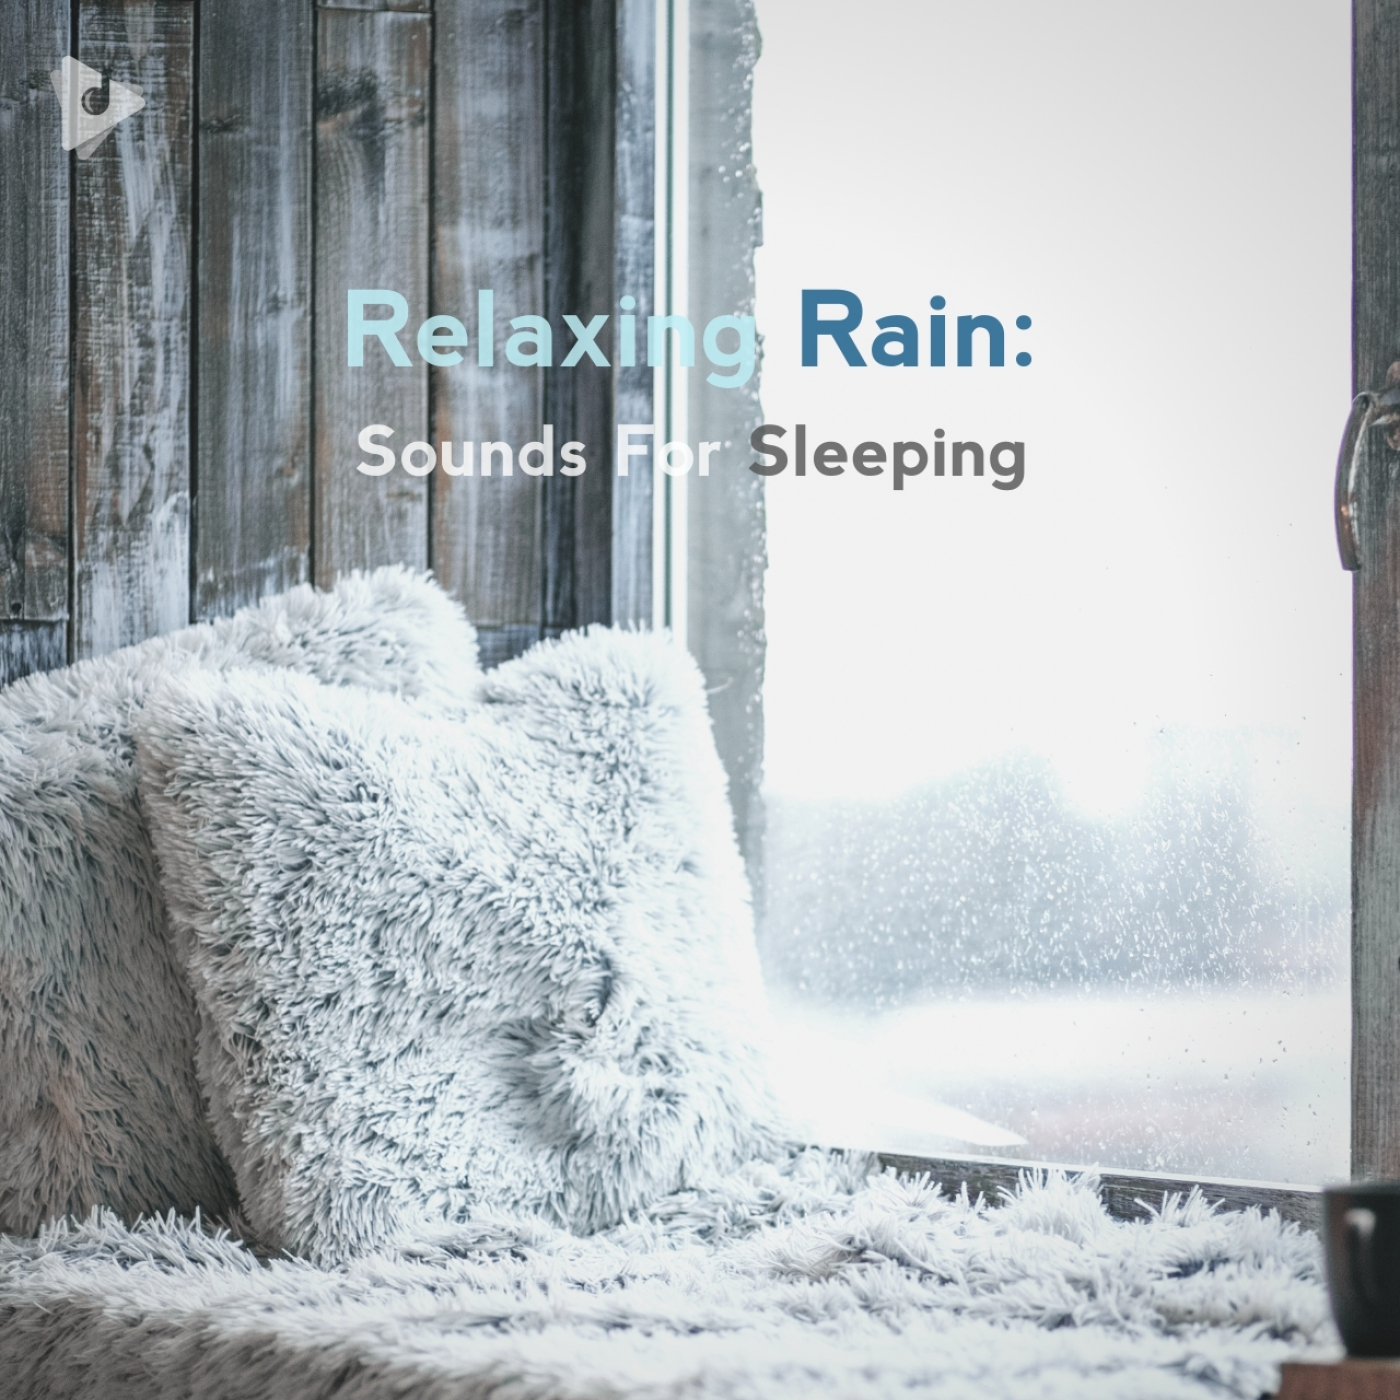 Relaxing Rain: Sounds For Sleeping